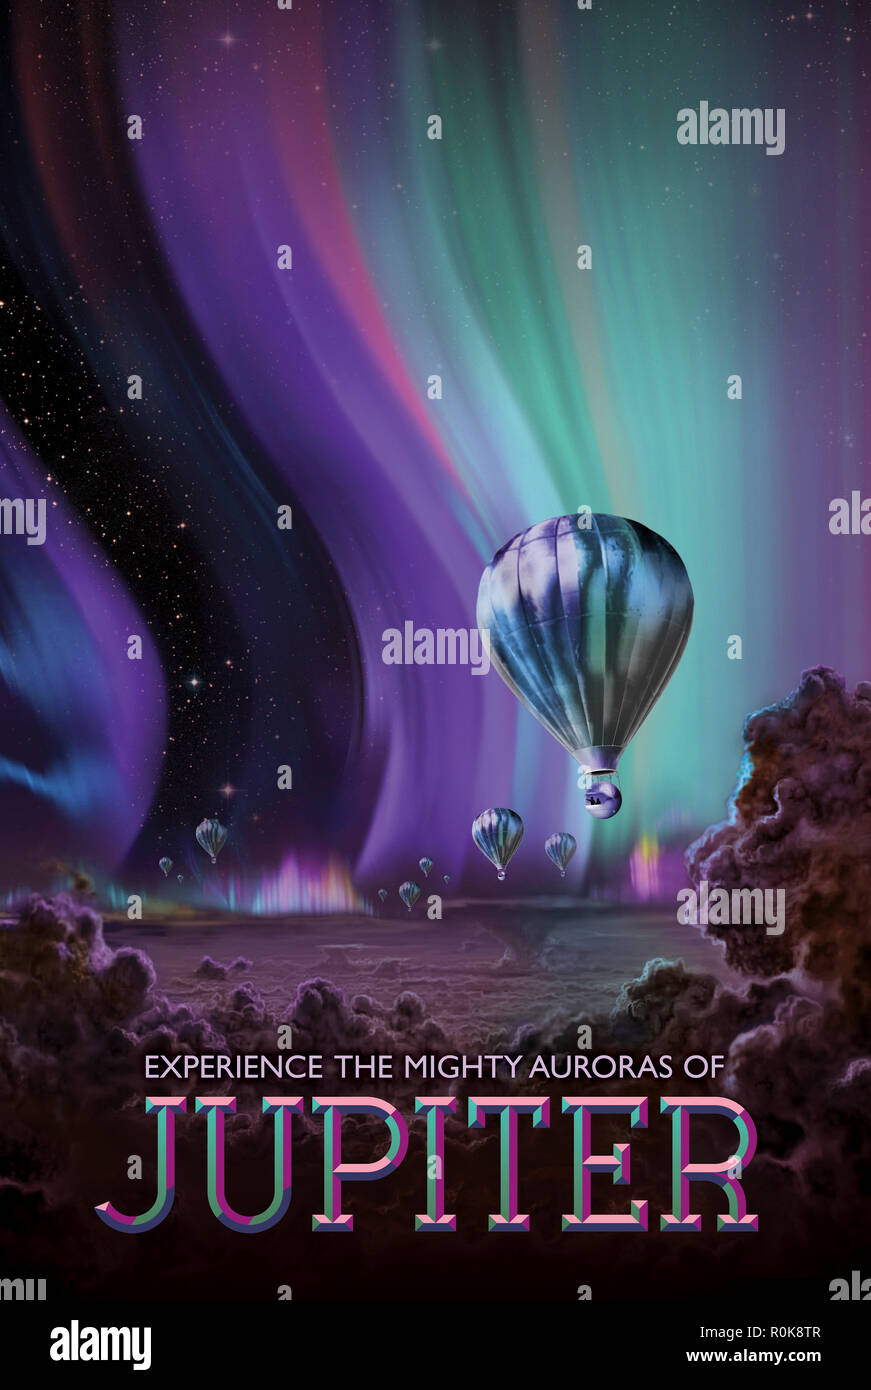 Retro space travel poster of the glowing auroras on planet Jupiter. - Stock Image